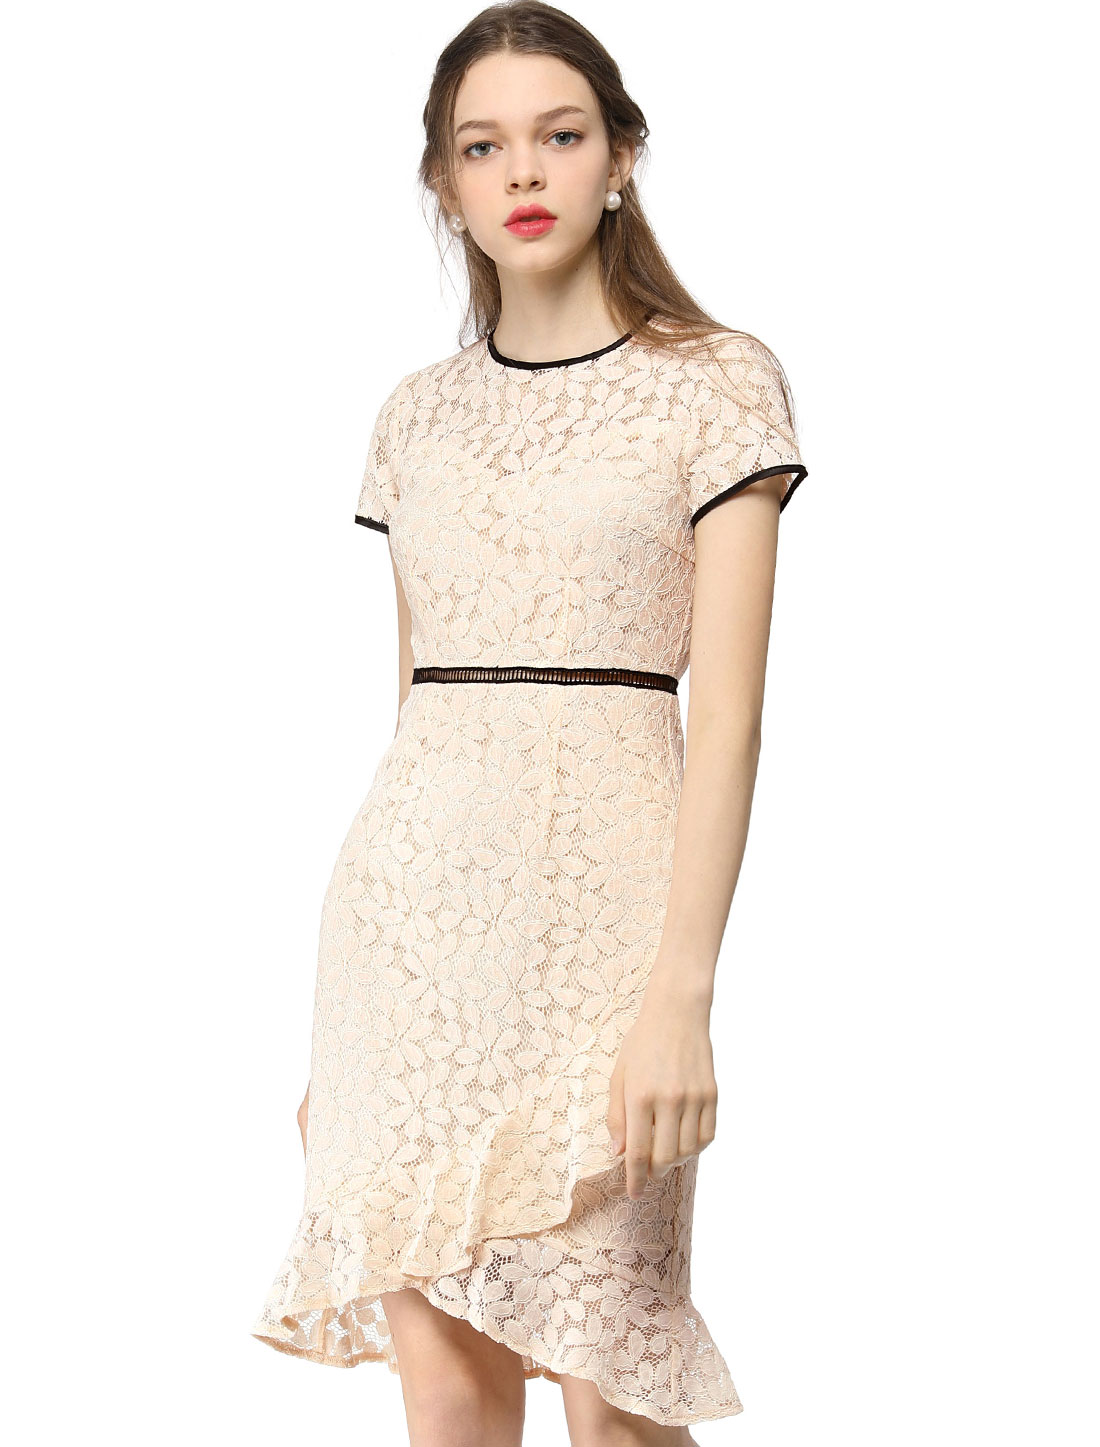 Women's Short Sleeve Contrast Trim Ruffled Floral Lace Dress Beige M